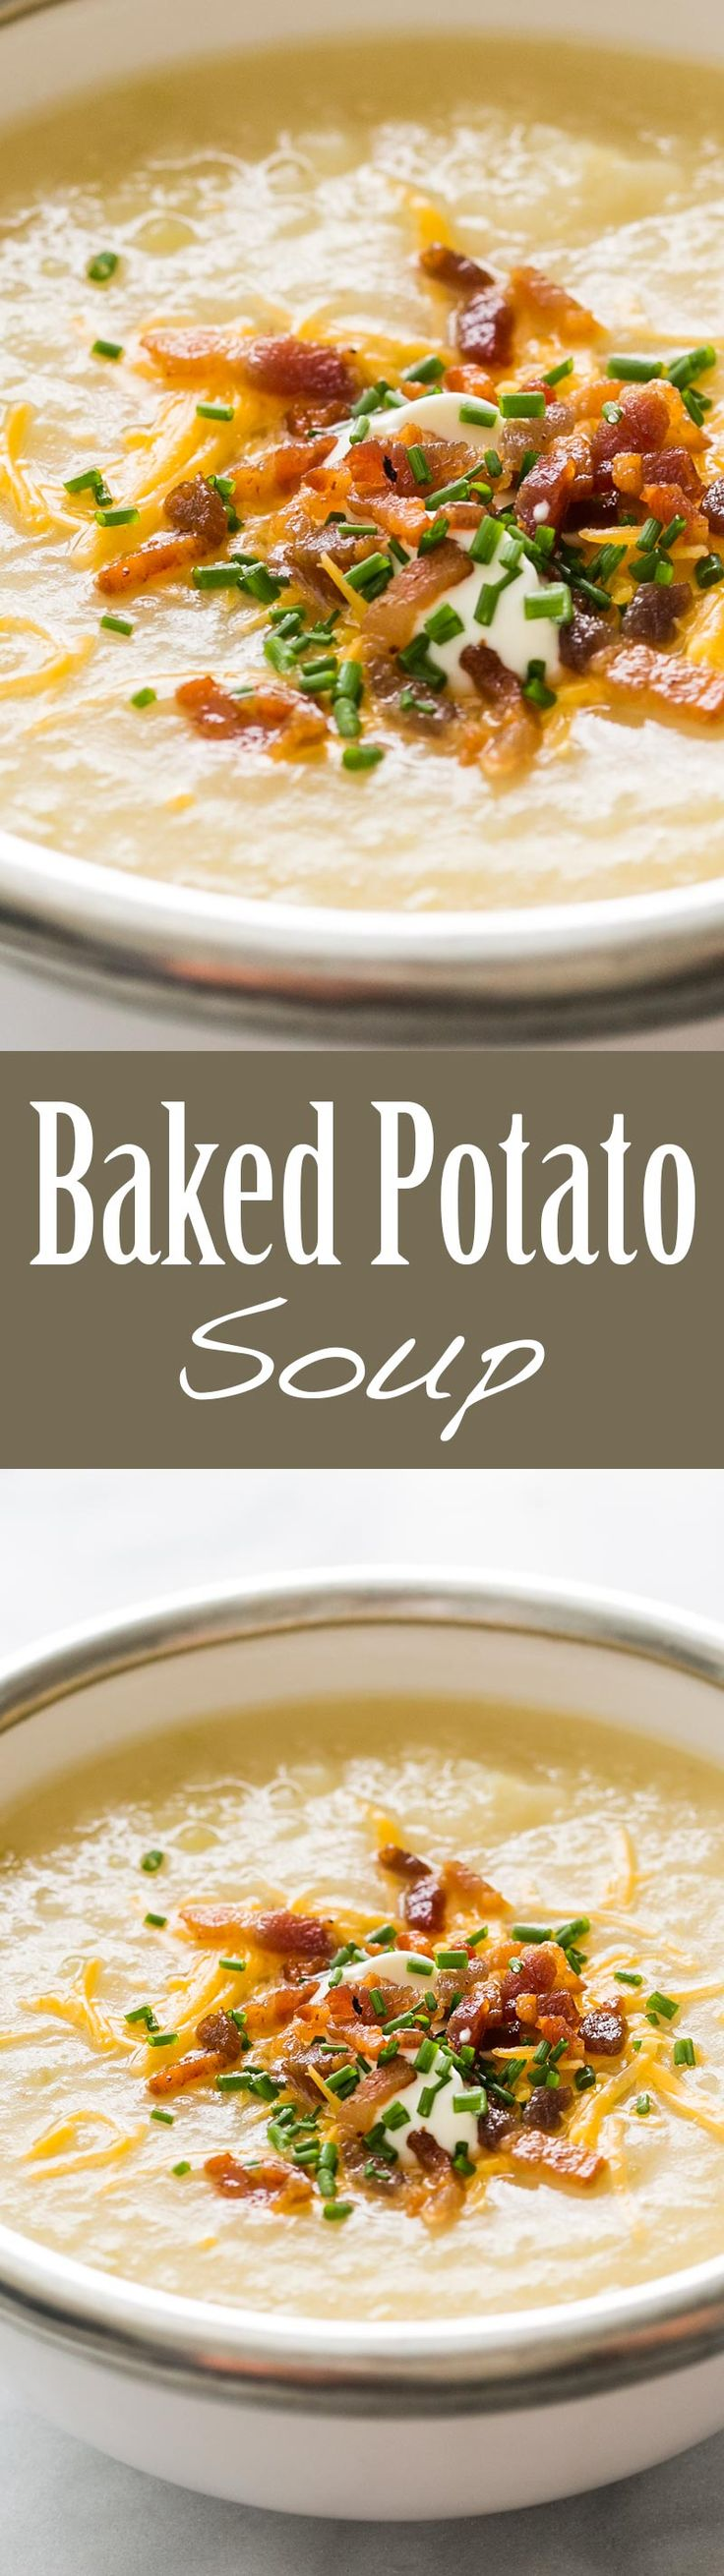 ... baked potato soup, with classic toppings of crispy bacon, sour cream